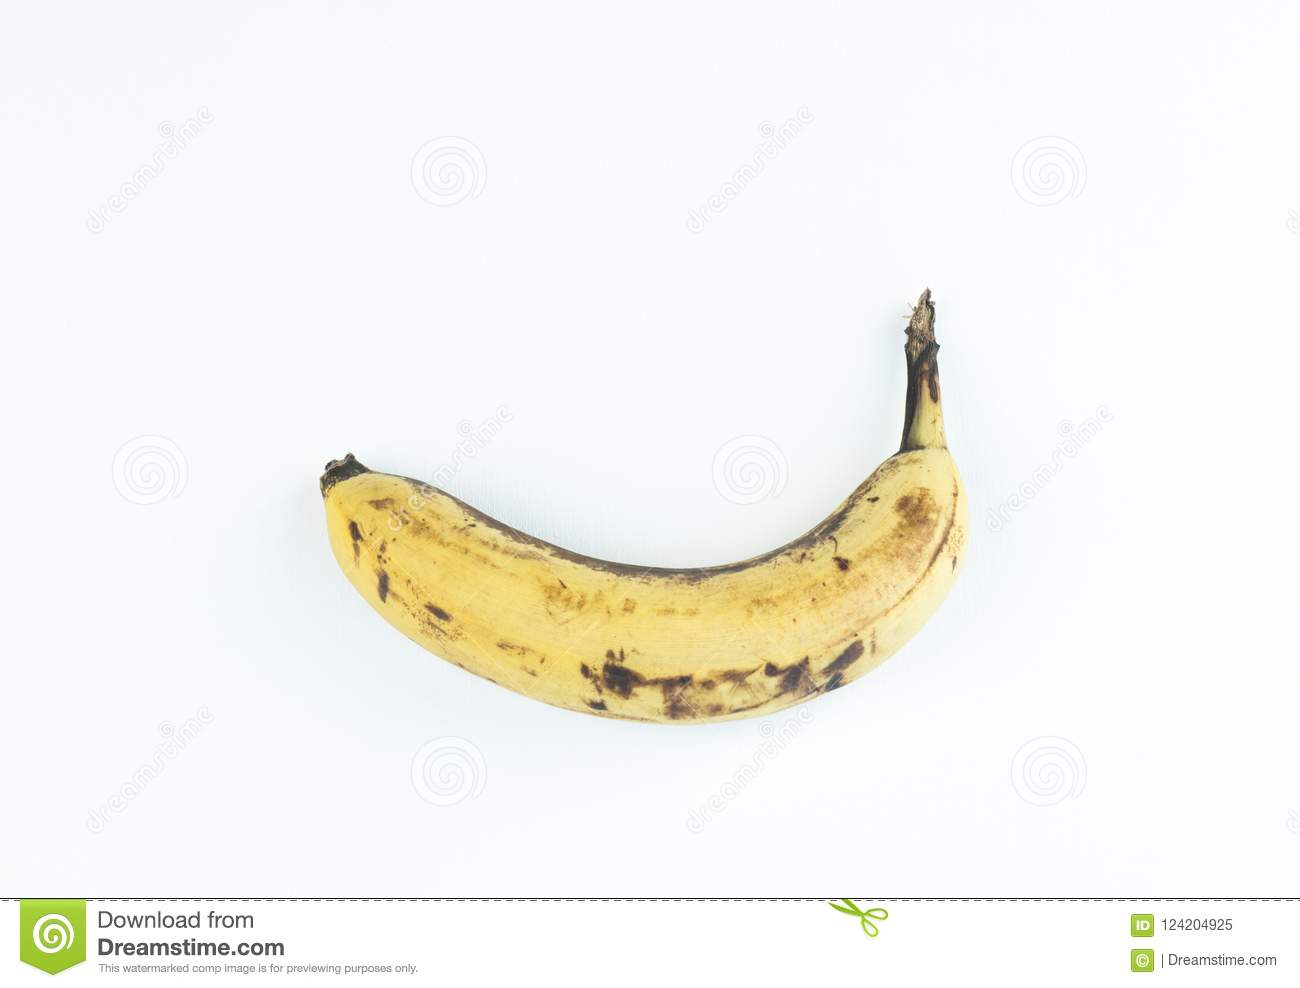 Ripe yellow fruit bananas, ripe banana with dark spots on a white background with clipping path.